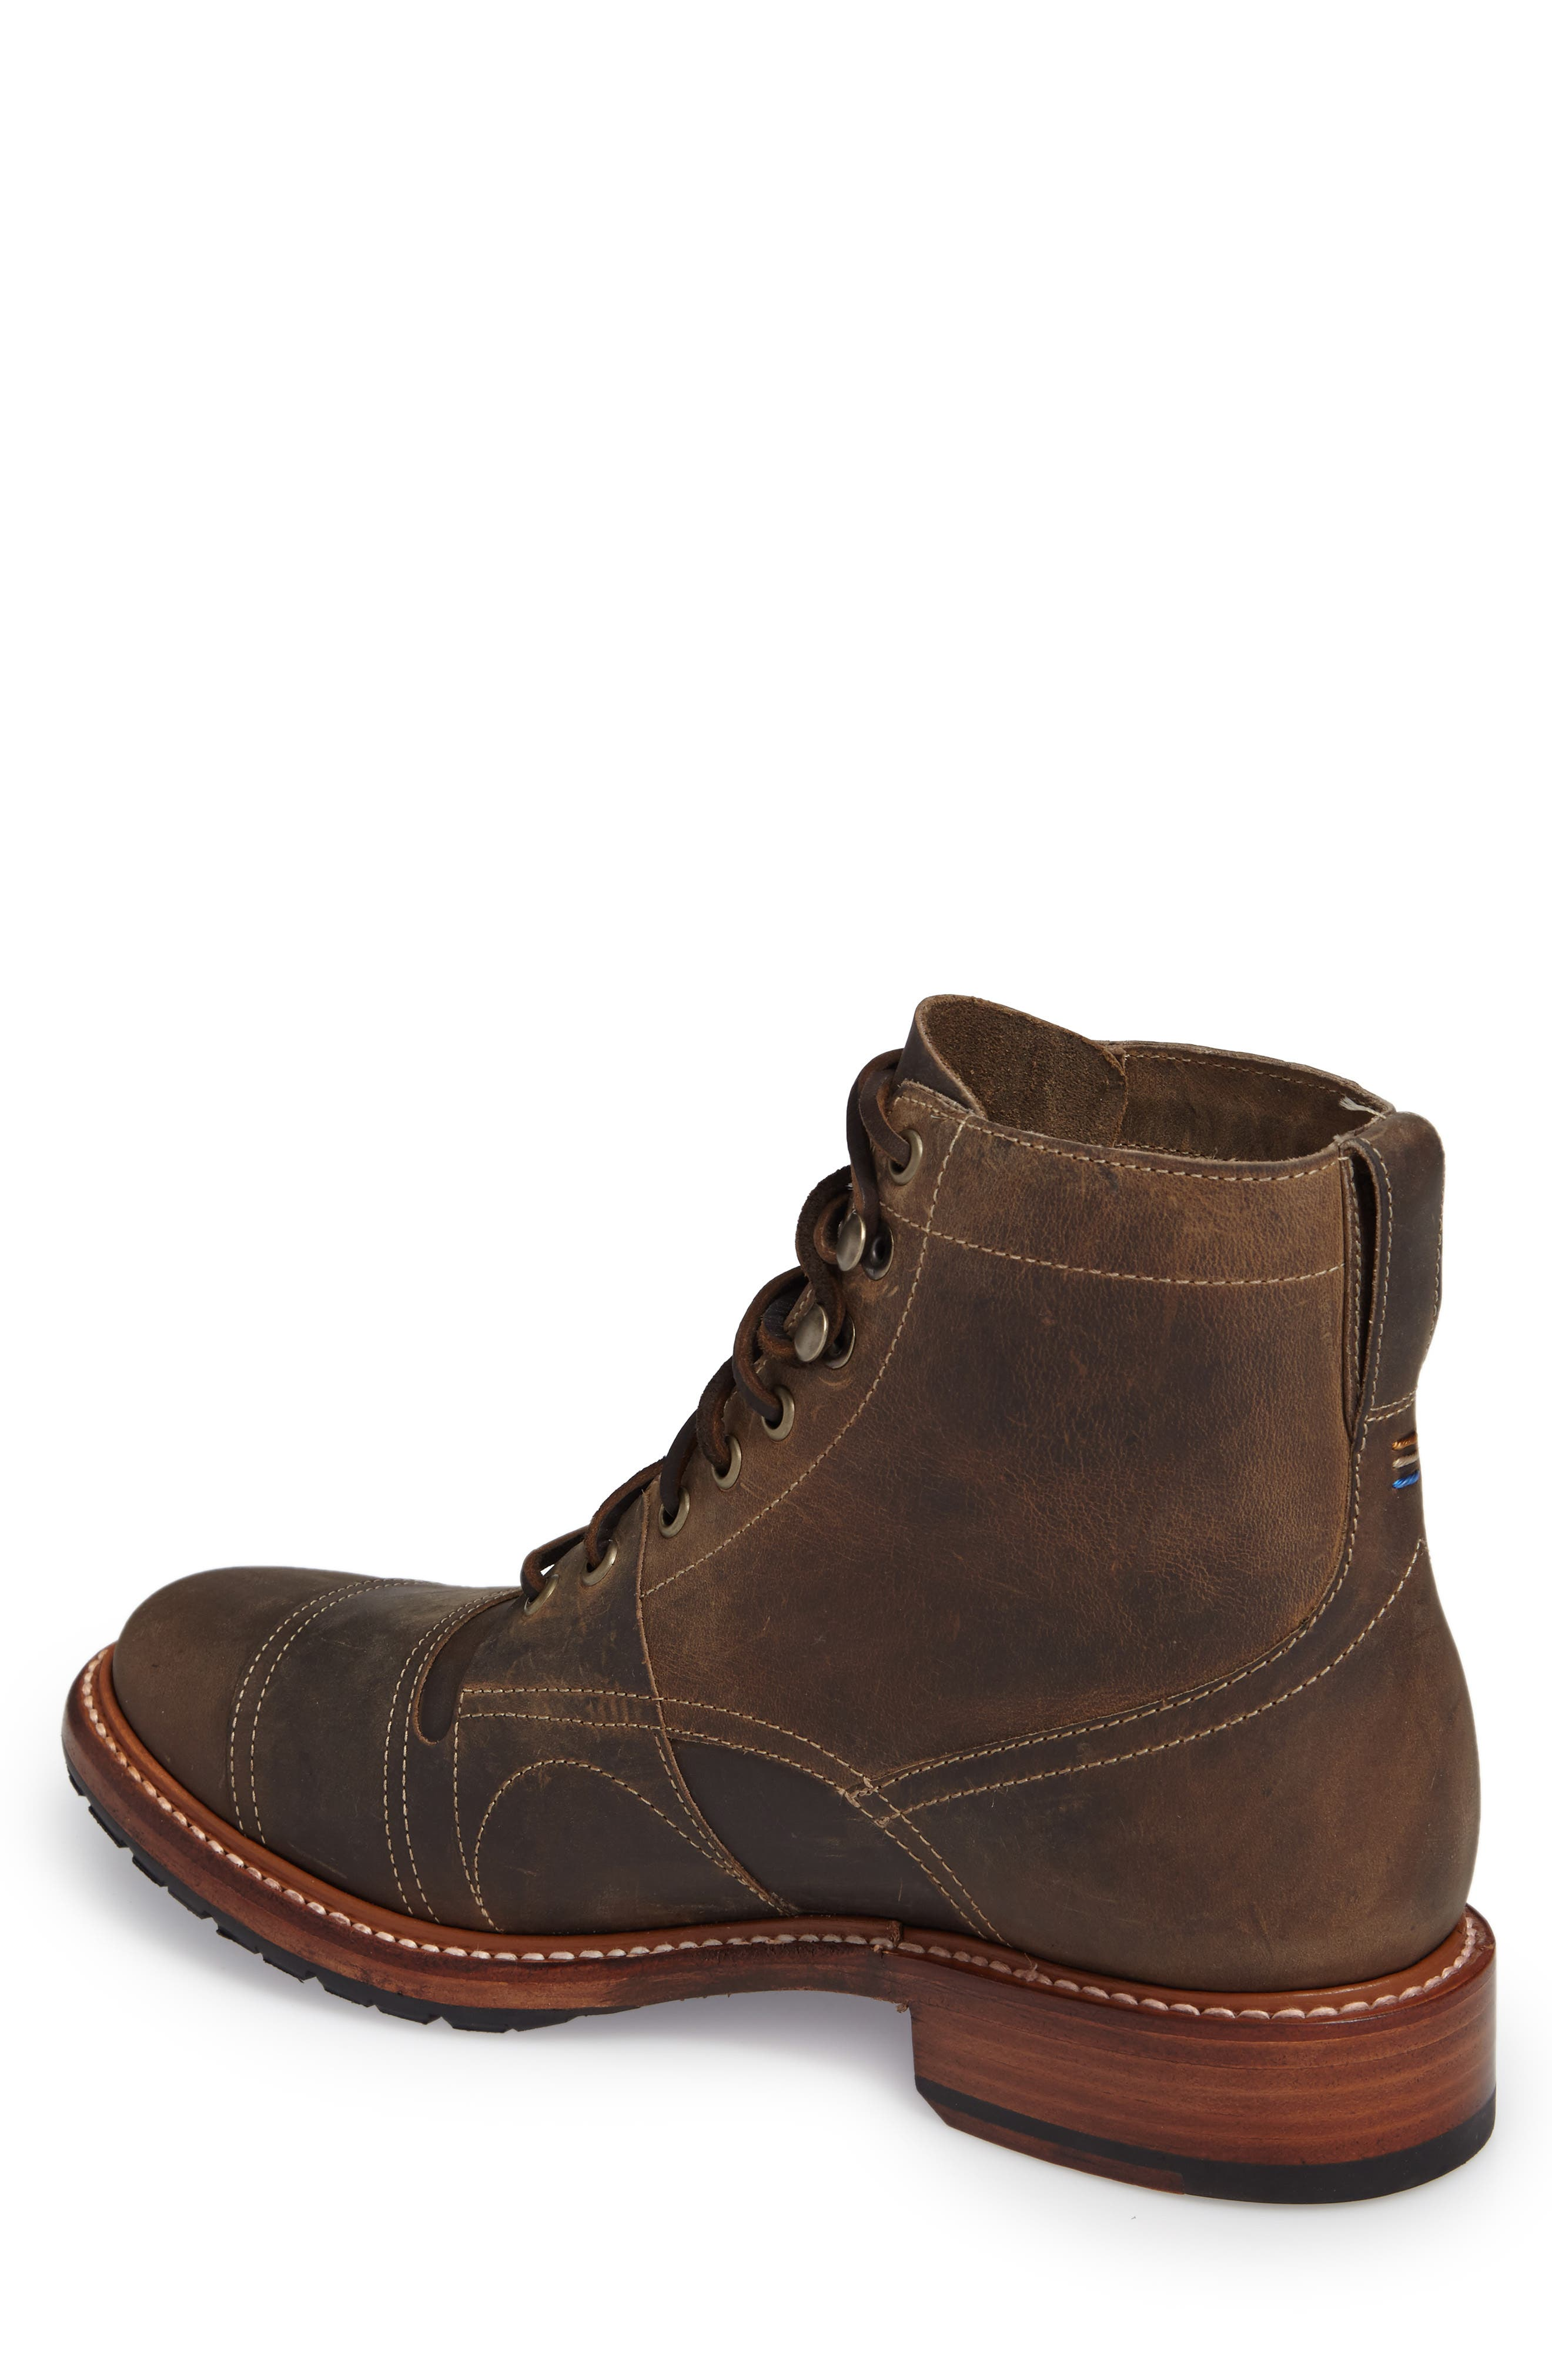 Cypress Plain Toe Boot,                             Alternate thumbnail 2, color,                             Brown Leather